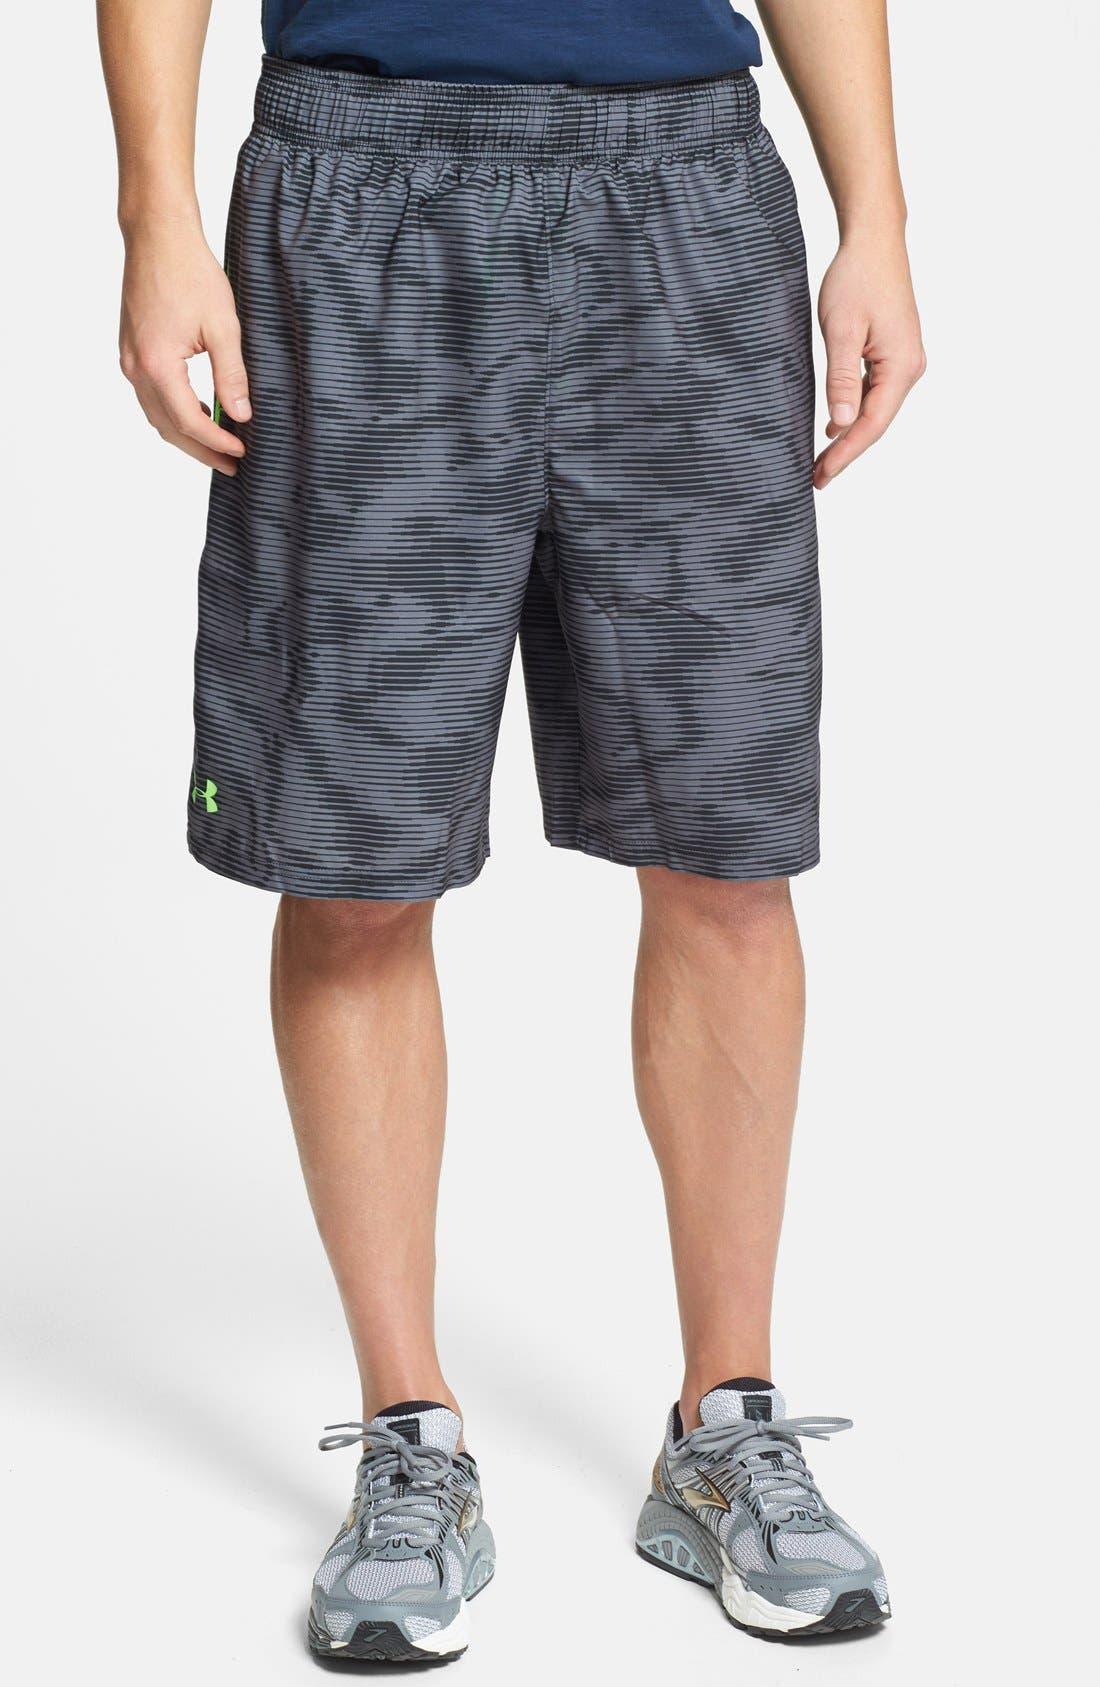 Main Image - Under Armour 'Mirage' HeatGear® Woven Shorts